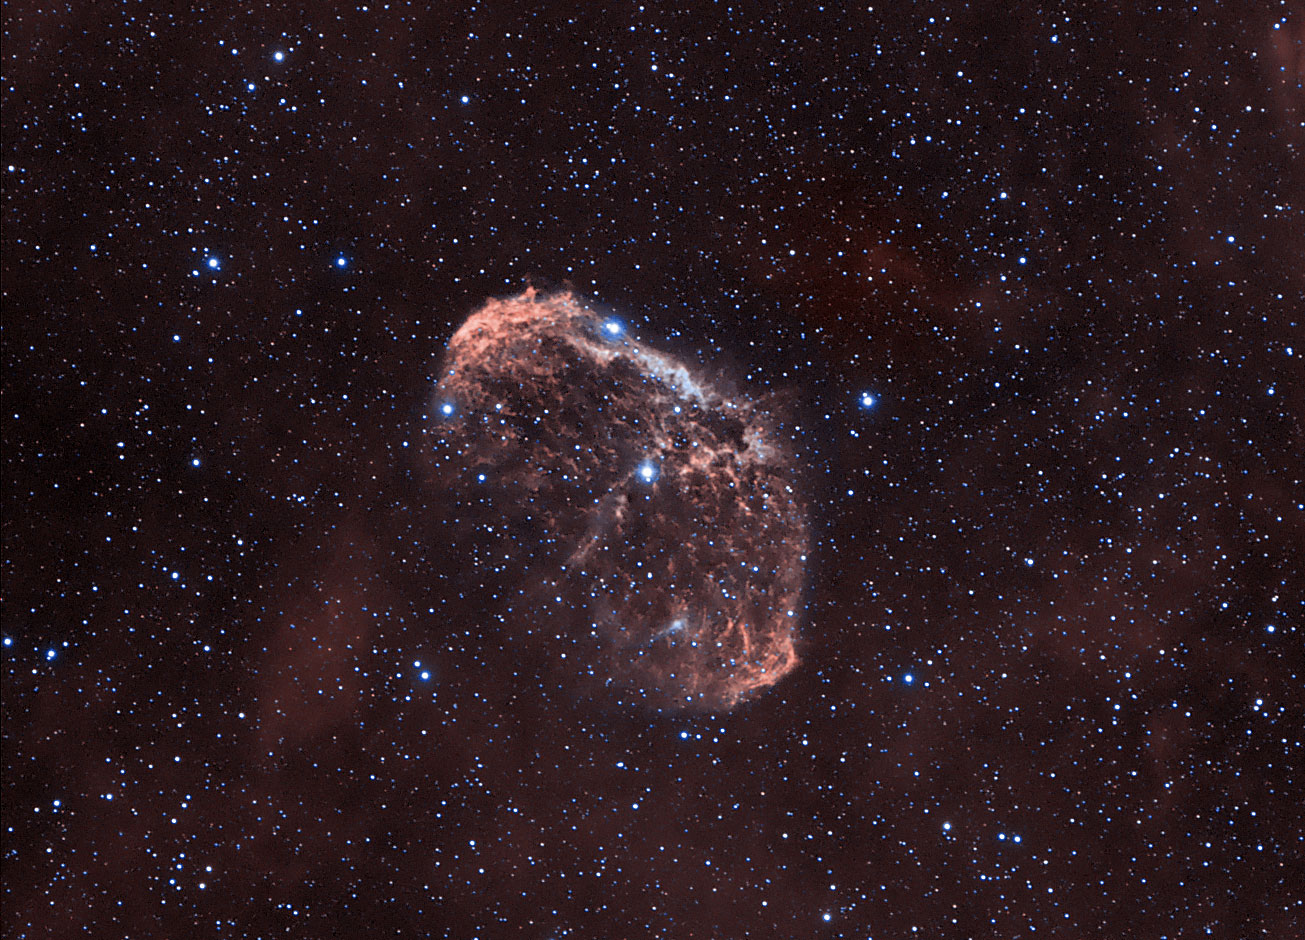 Booming Crescent Nebula Shines in Skywatcher Photo